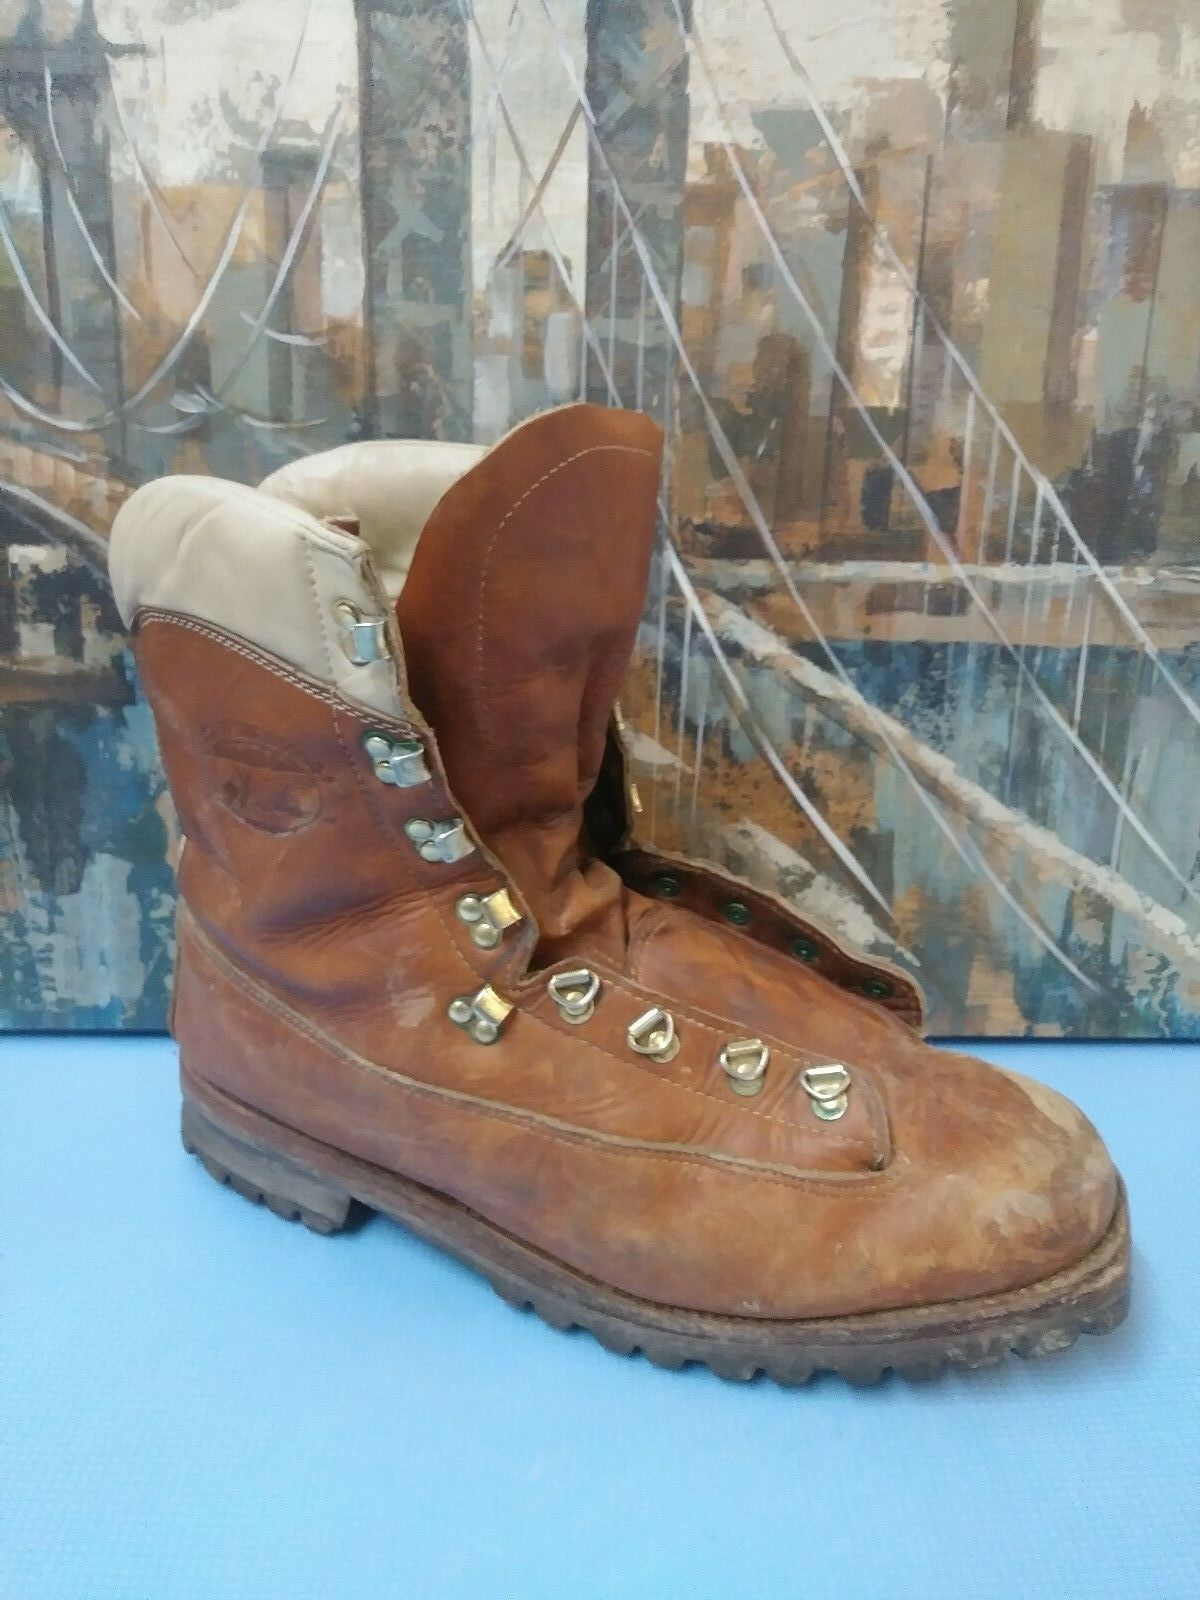 Lake of the Woods 5900 Men's Hiking Boots Brown Leather Boots Size 13D